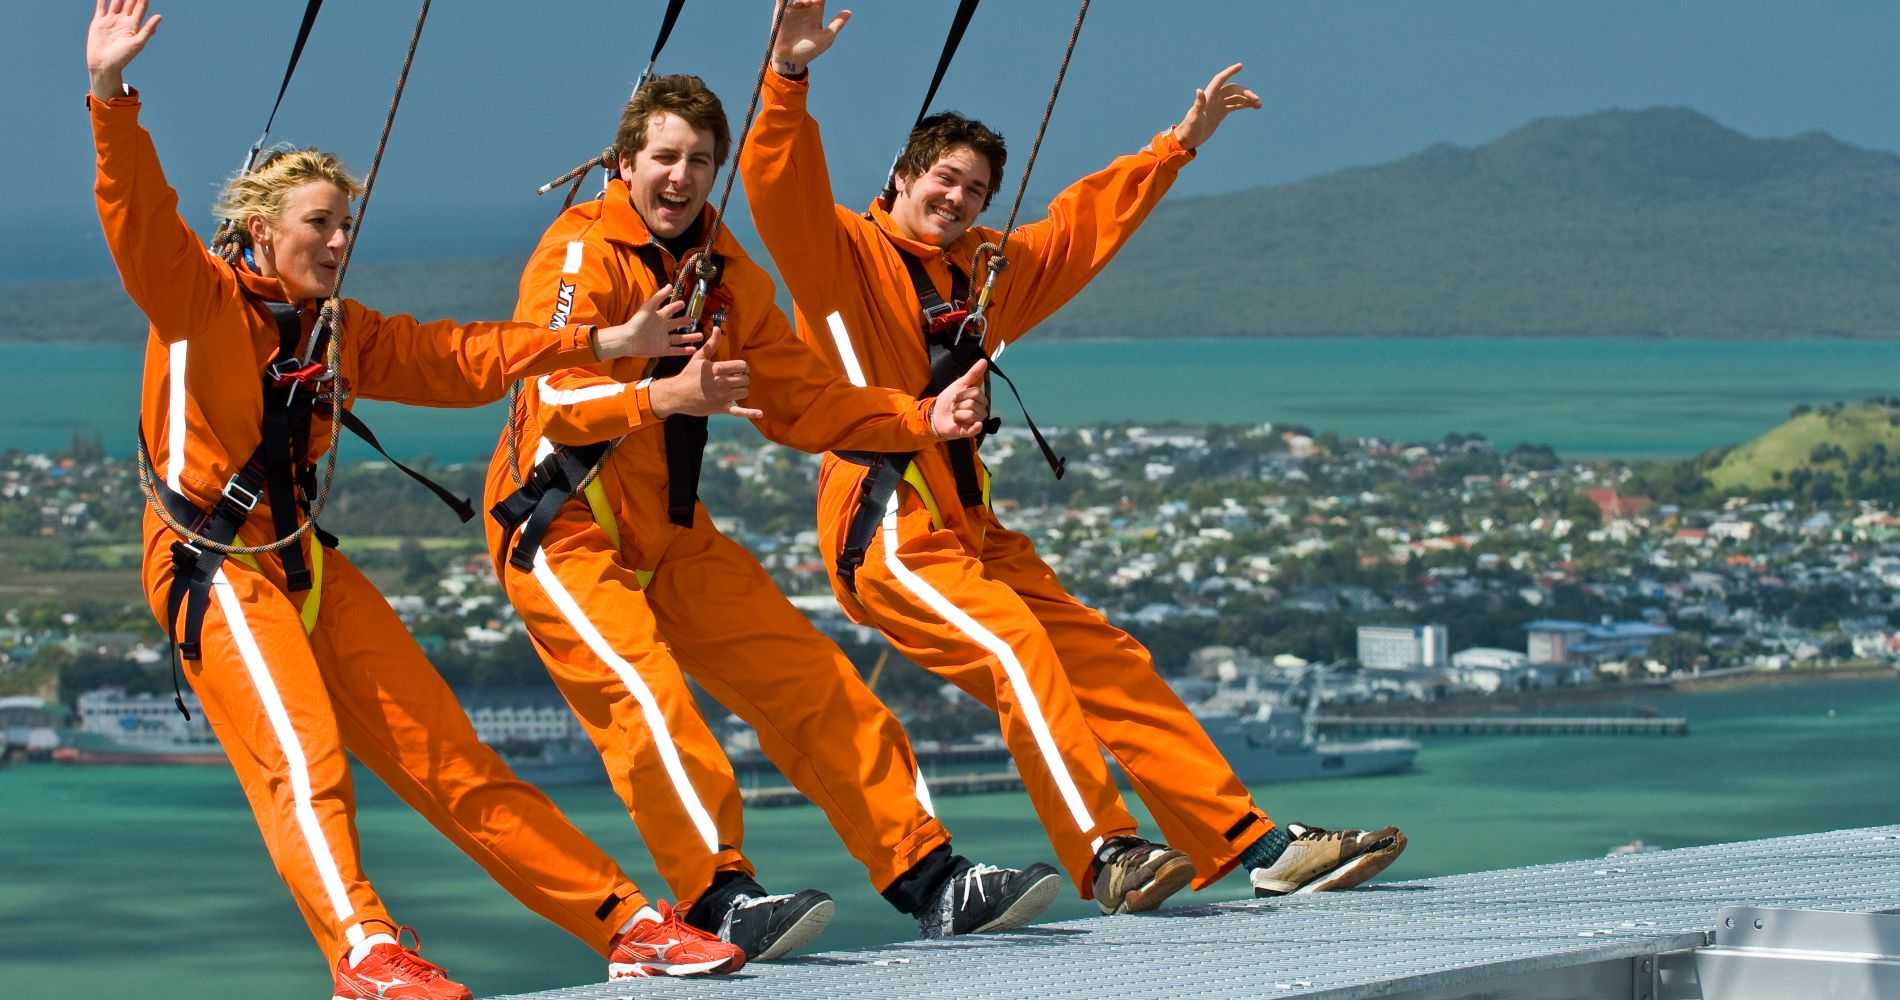 Skywalk the Edge Auckland Tinggly Experience Gifts